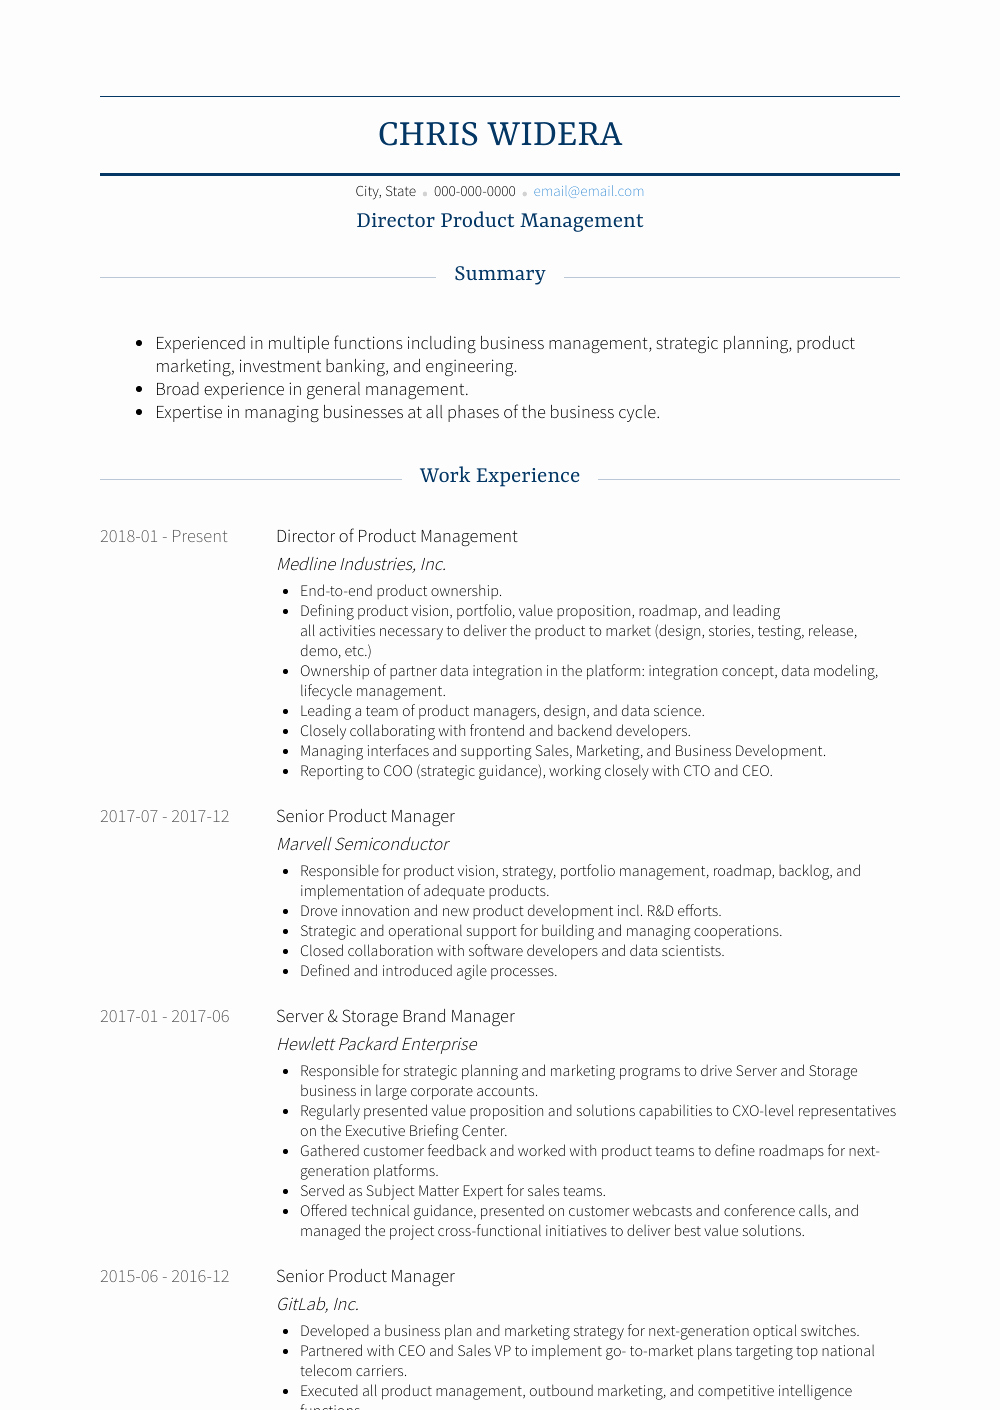 Product Manager Resume Template Inspirational Senior Product Manager Resume Samples & Templates